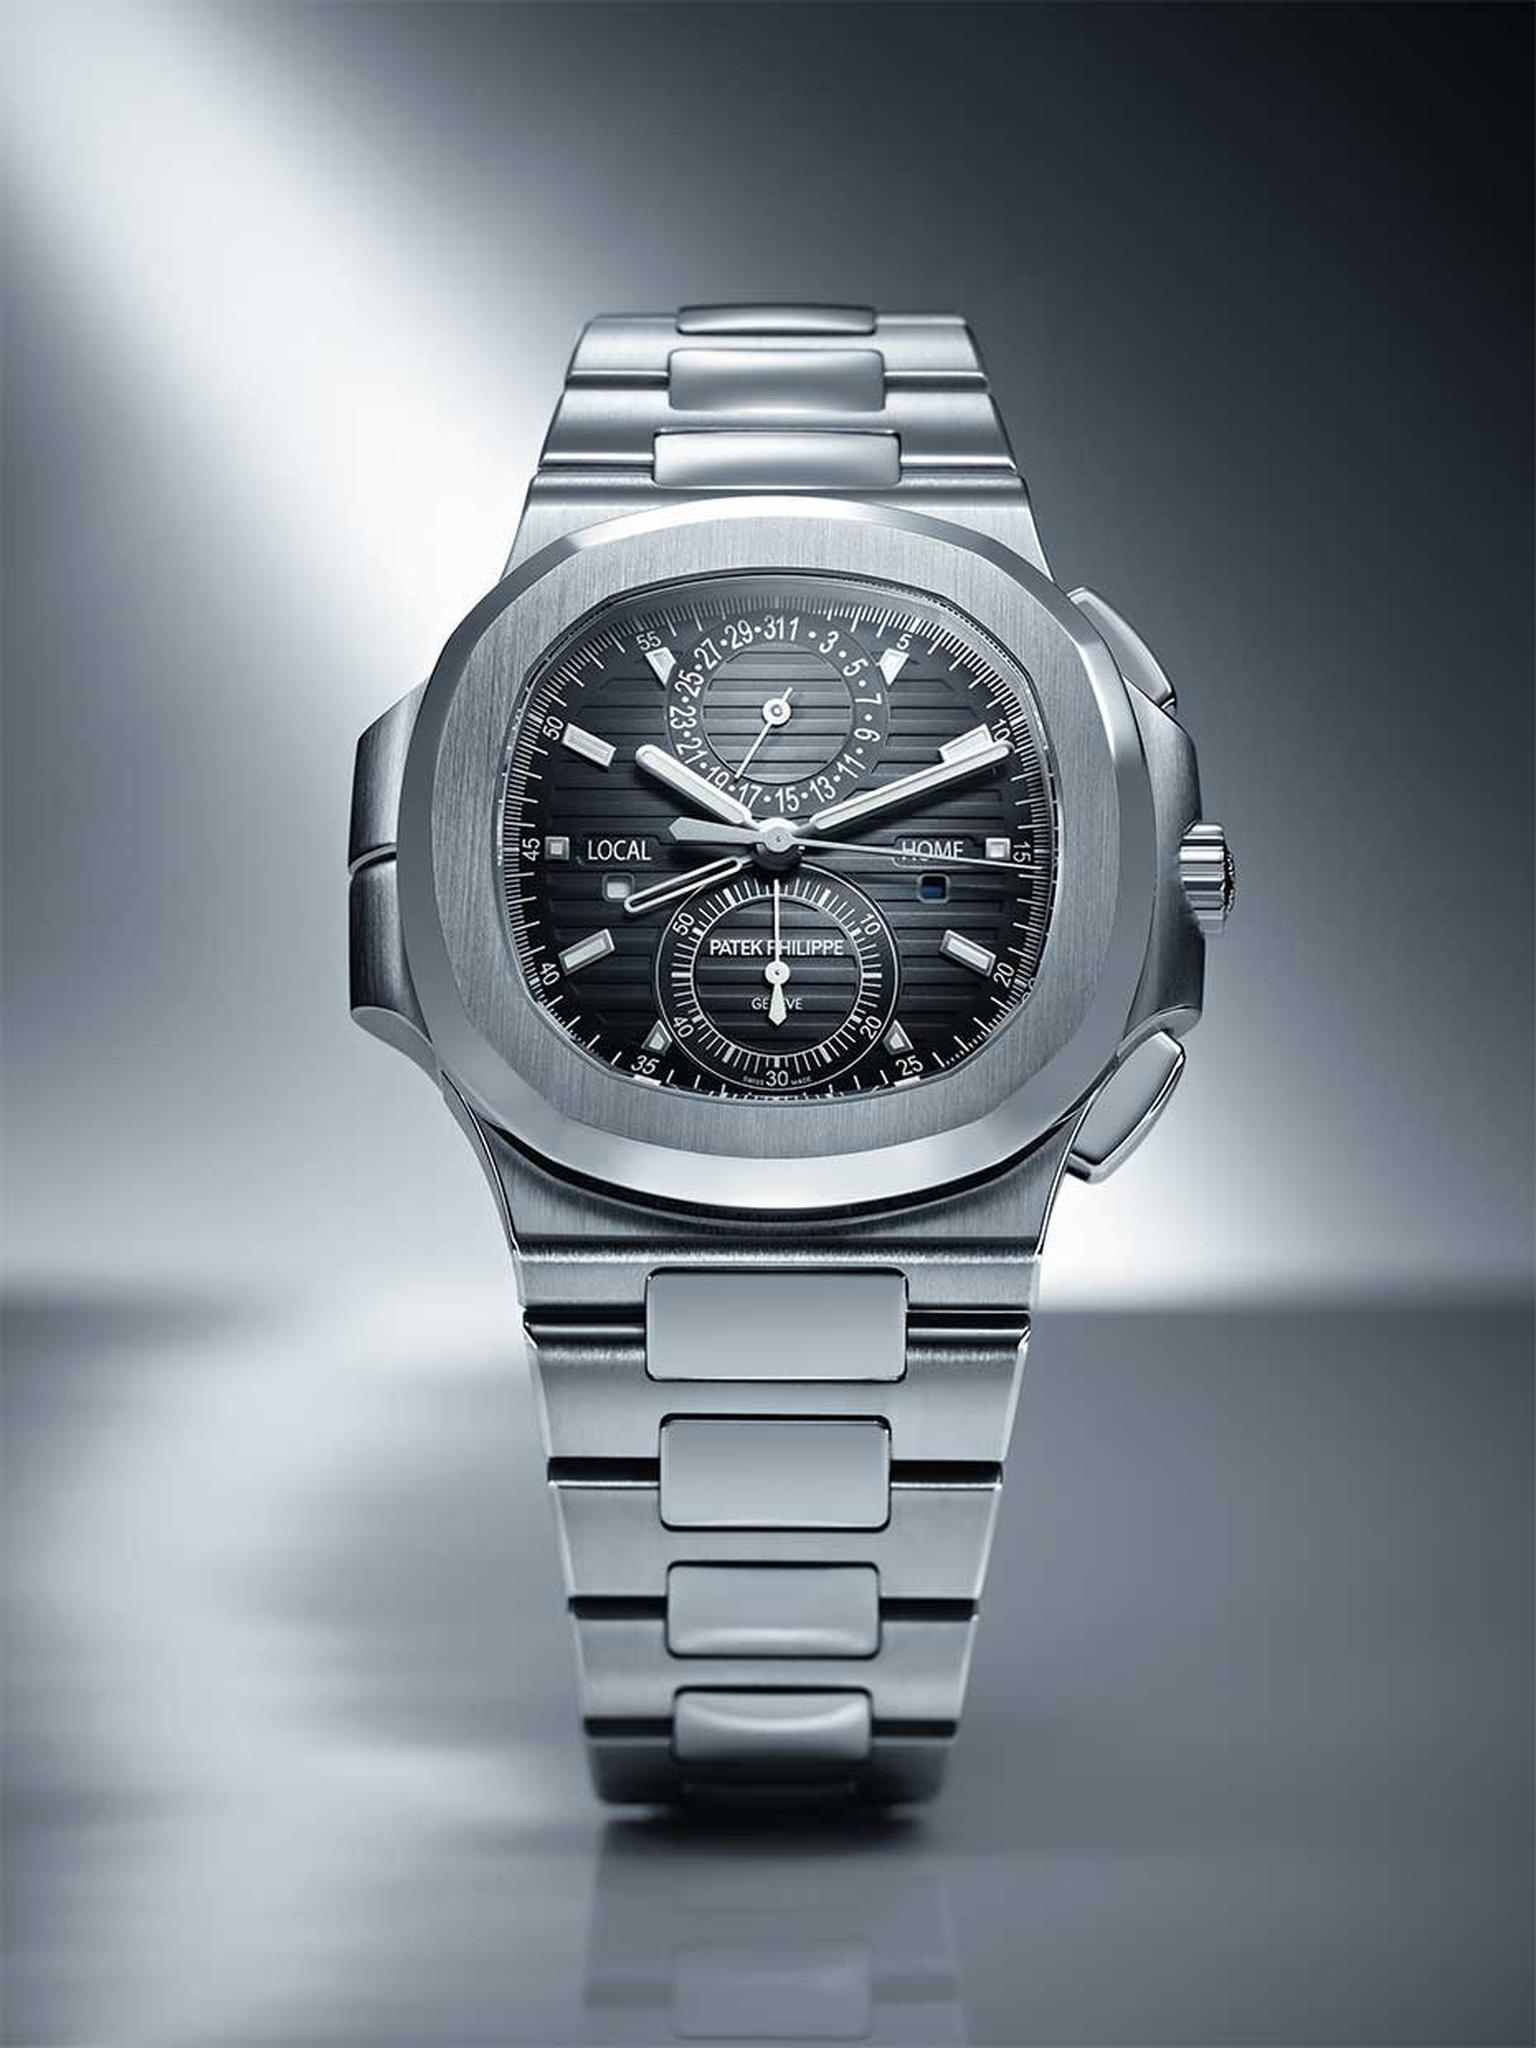 Iconic Watches For Men That Have Endured The Test Of Time